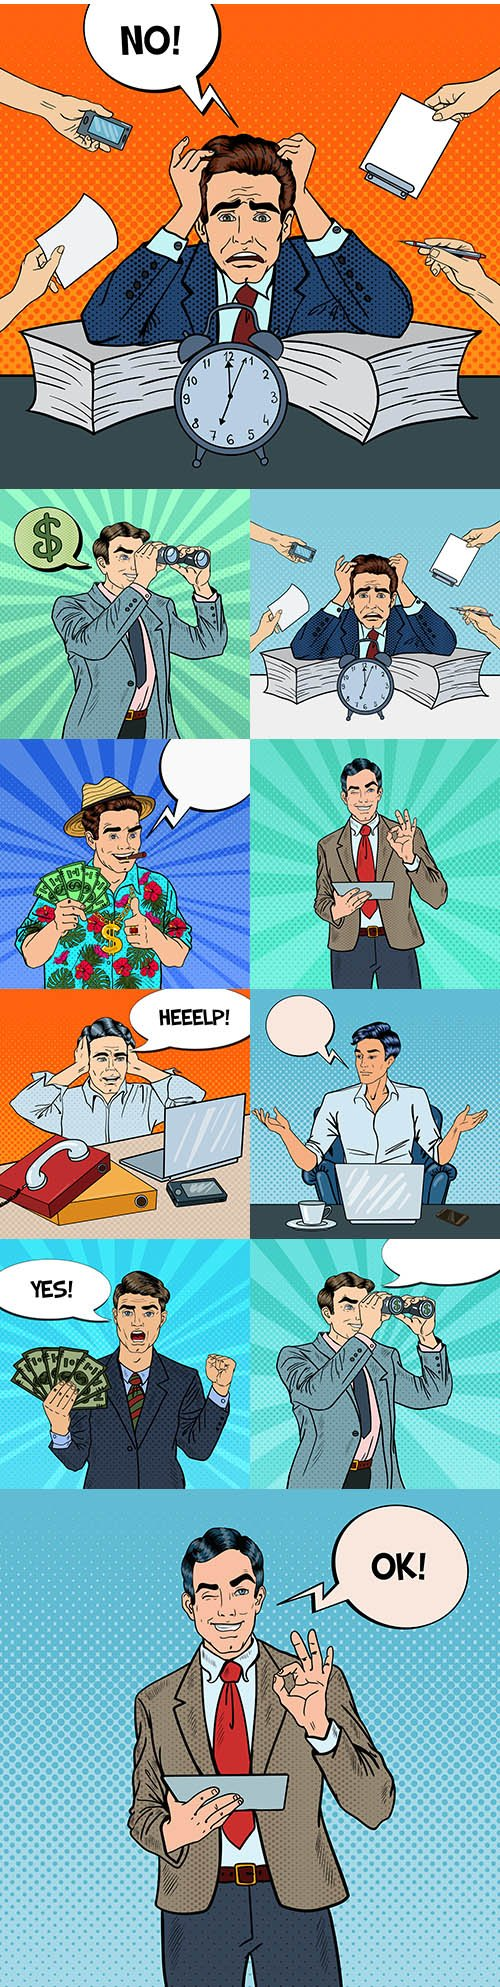 Pop art businessman in multitasking office work illustration